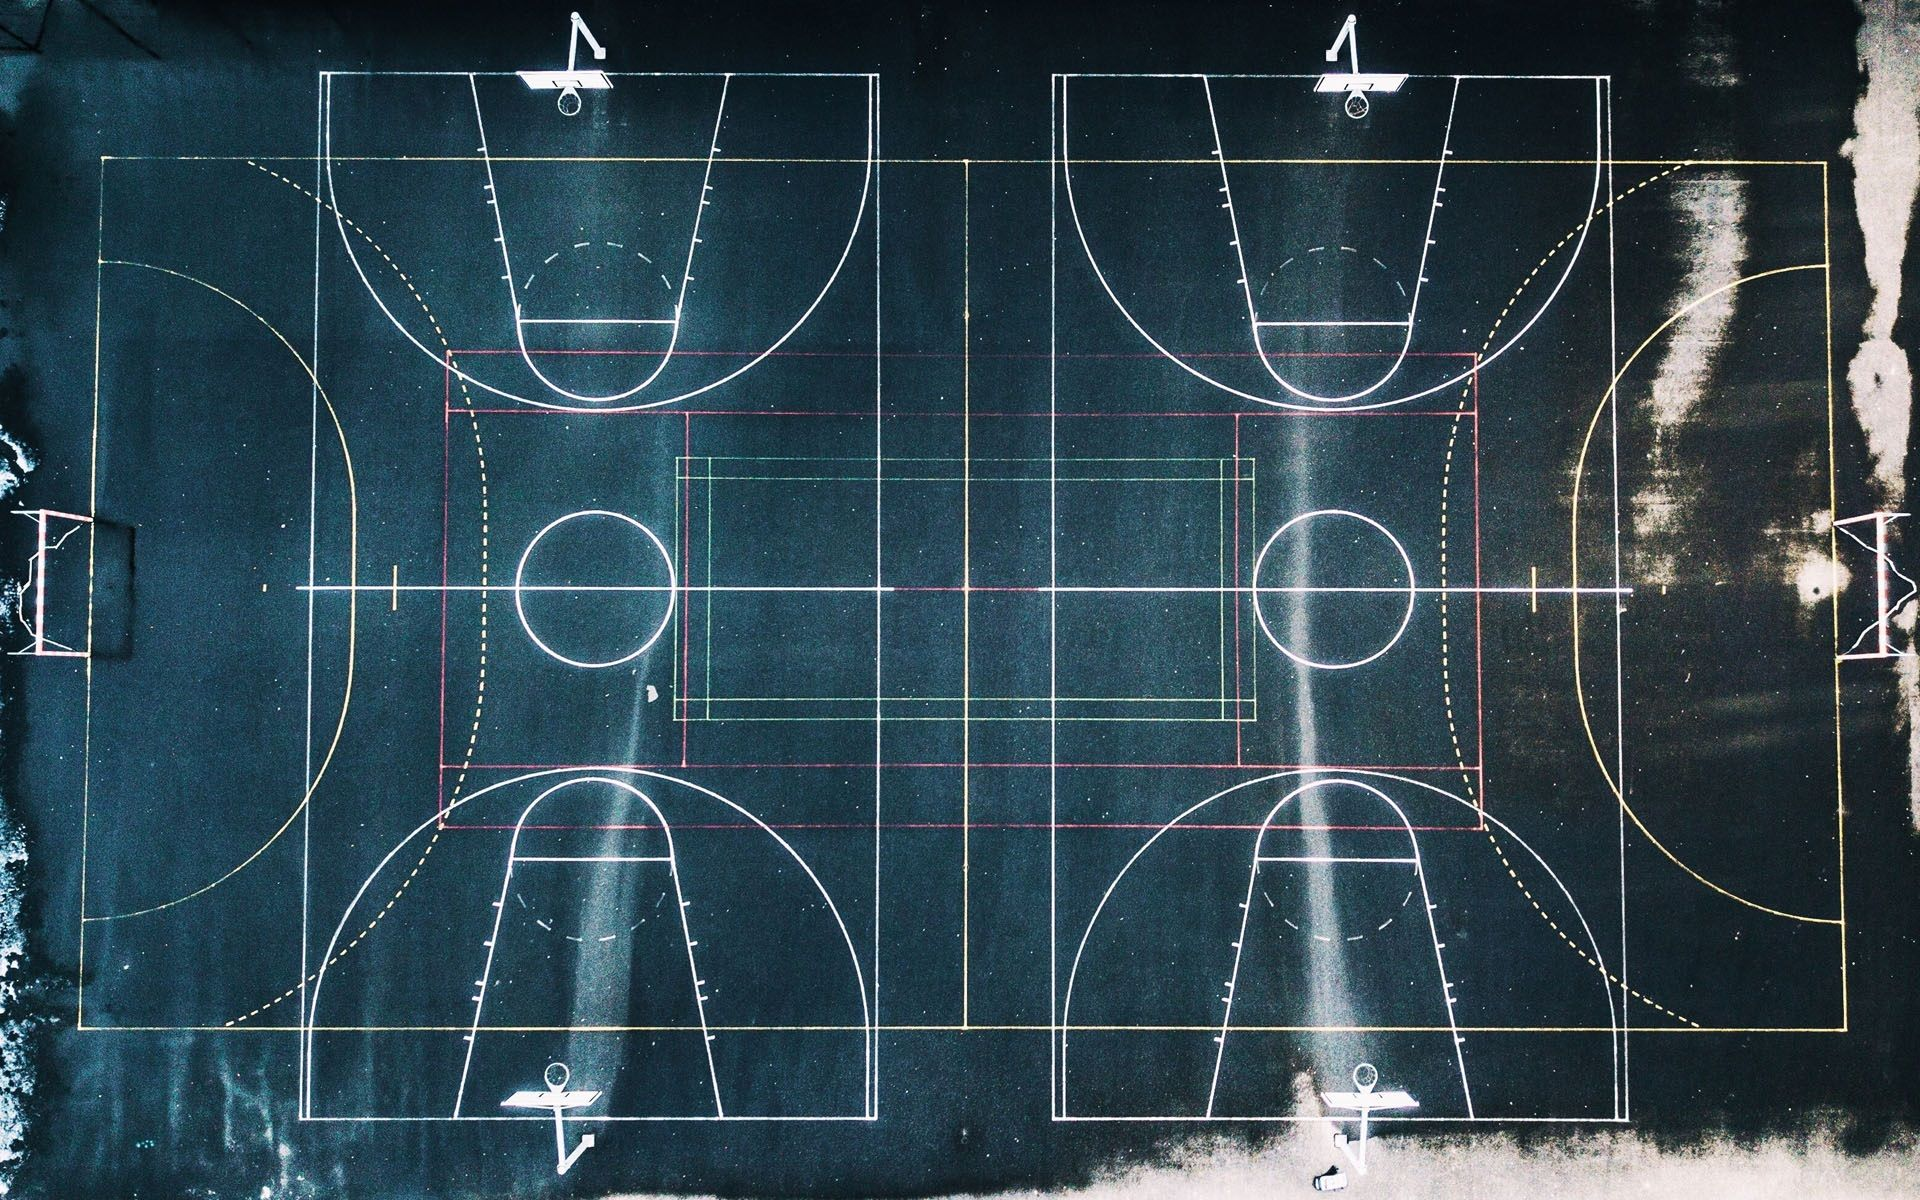 Geometry Of Basketball Court Hd Wallpaper Basketball Ring Basketball Court Basketball Pictures